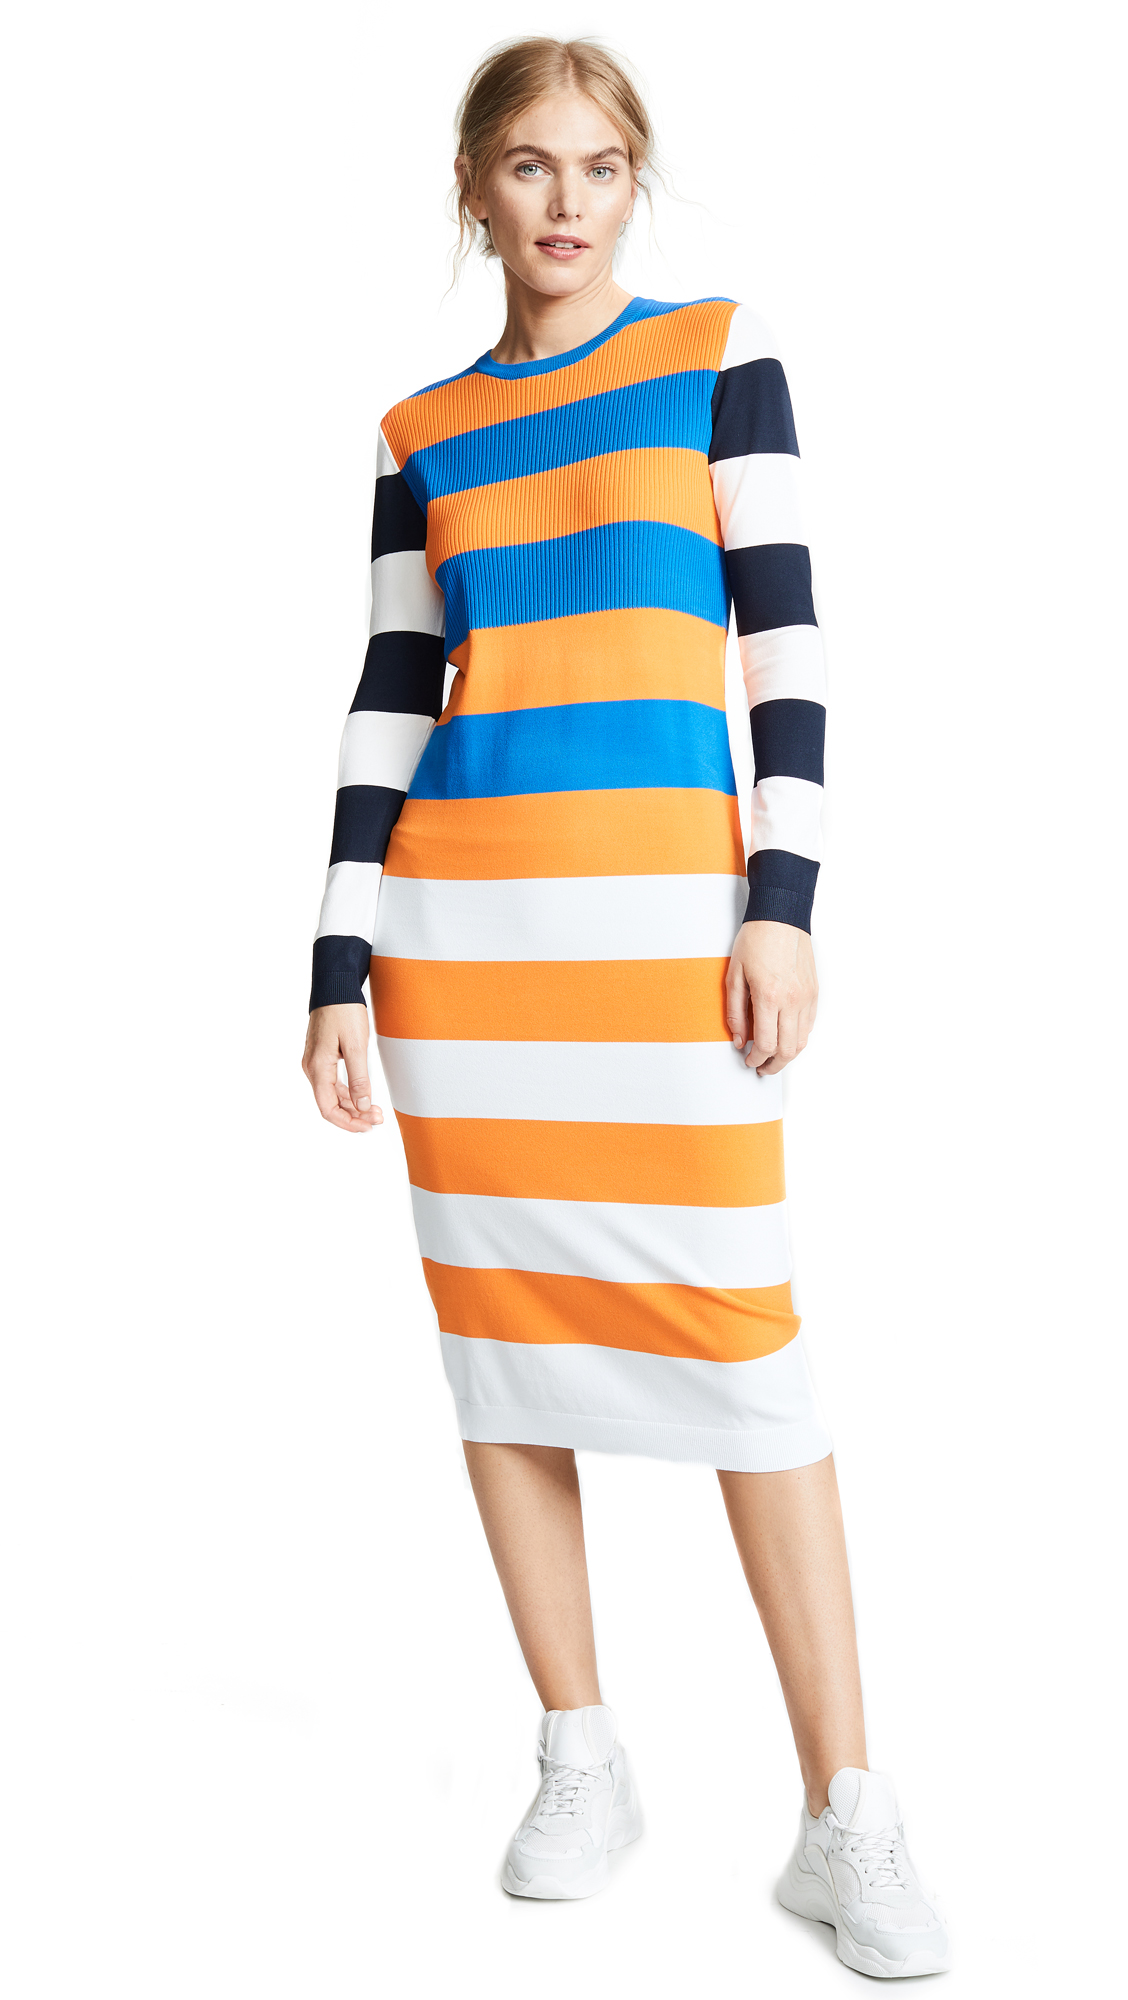 Tory Sport Broad Stripe Tech Knit Dress - Broad Stripe